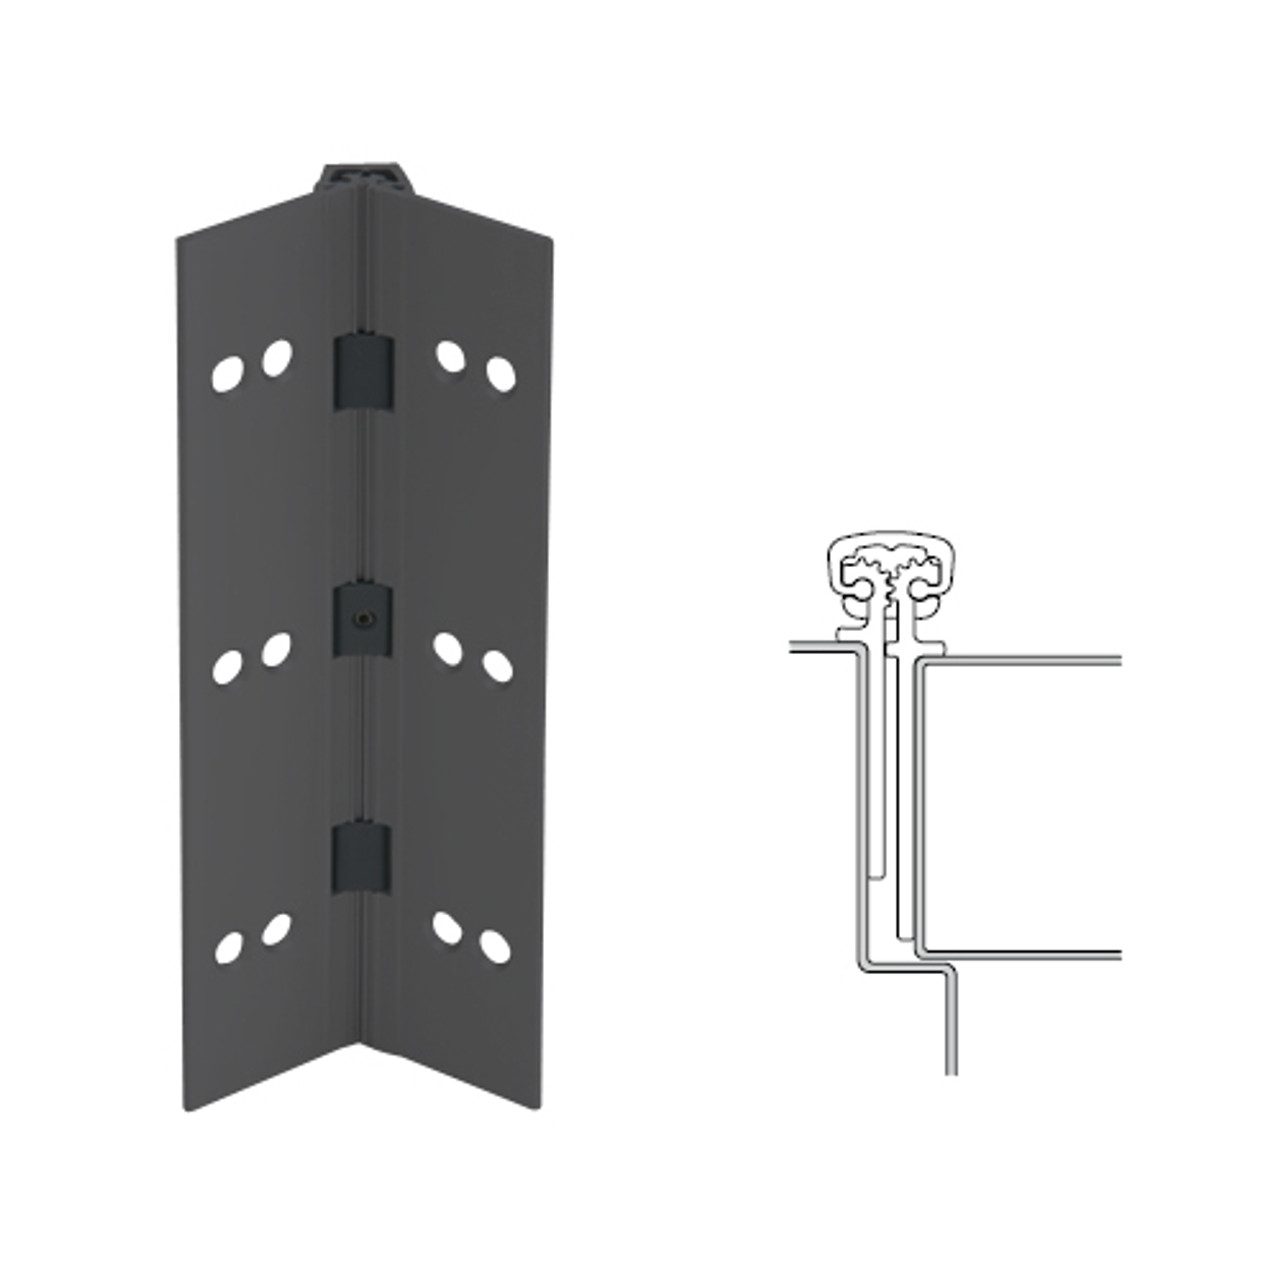 026XY-315AN-120-TEKWD IVES Full Mortise Continuous Geared Hinges with Wood Screws in Anodized Black